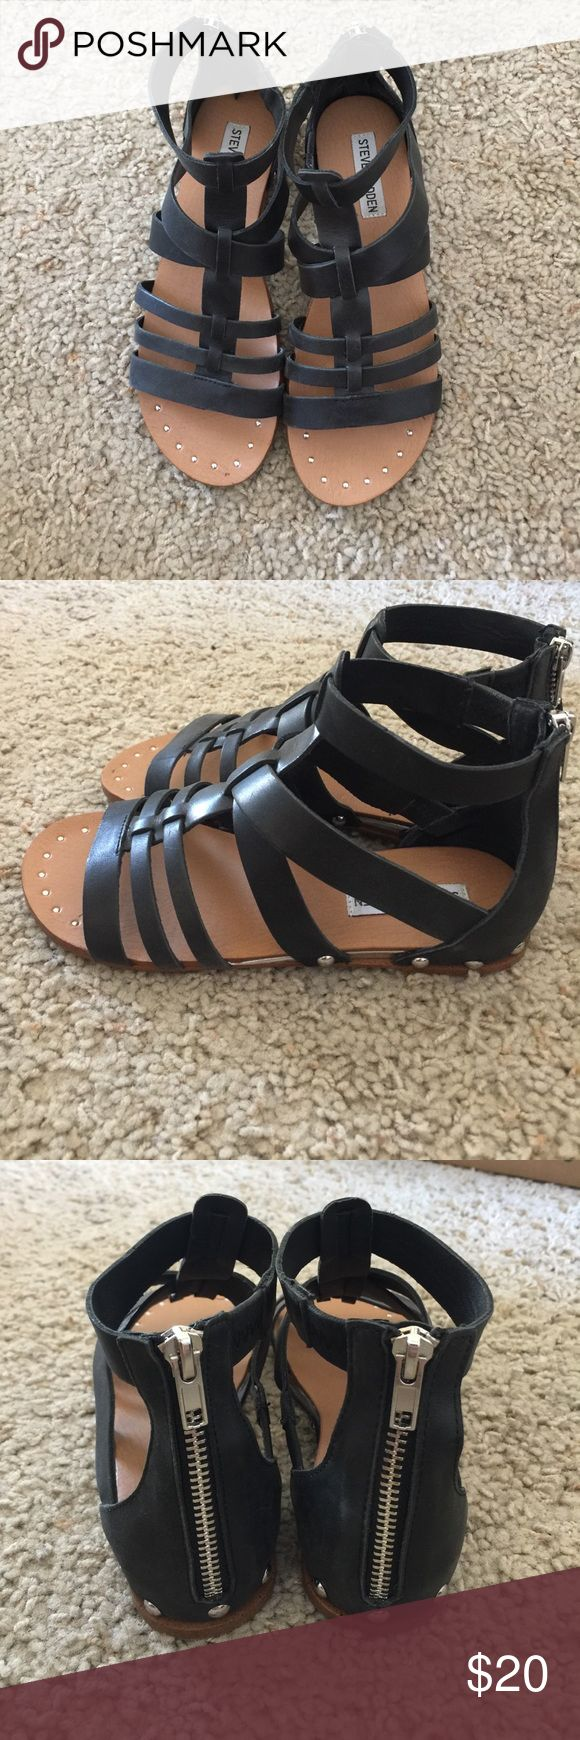 ✨ Steve Madden black gladiator sandals ✨ Strappy gladiator sandals by Steve Madden with silver zippers in the. Ack and silver stud detailing. The bottoms of the sandals are a bit dirty but these have only been worn a handful of times since I got them last summer! Steve Madden Shoes Sandals